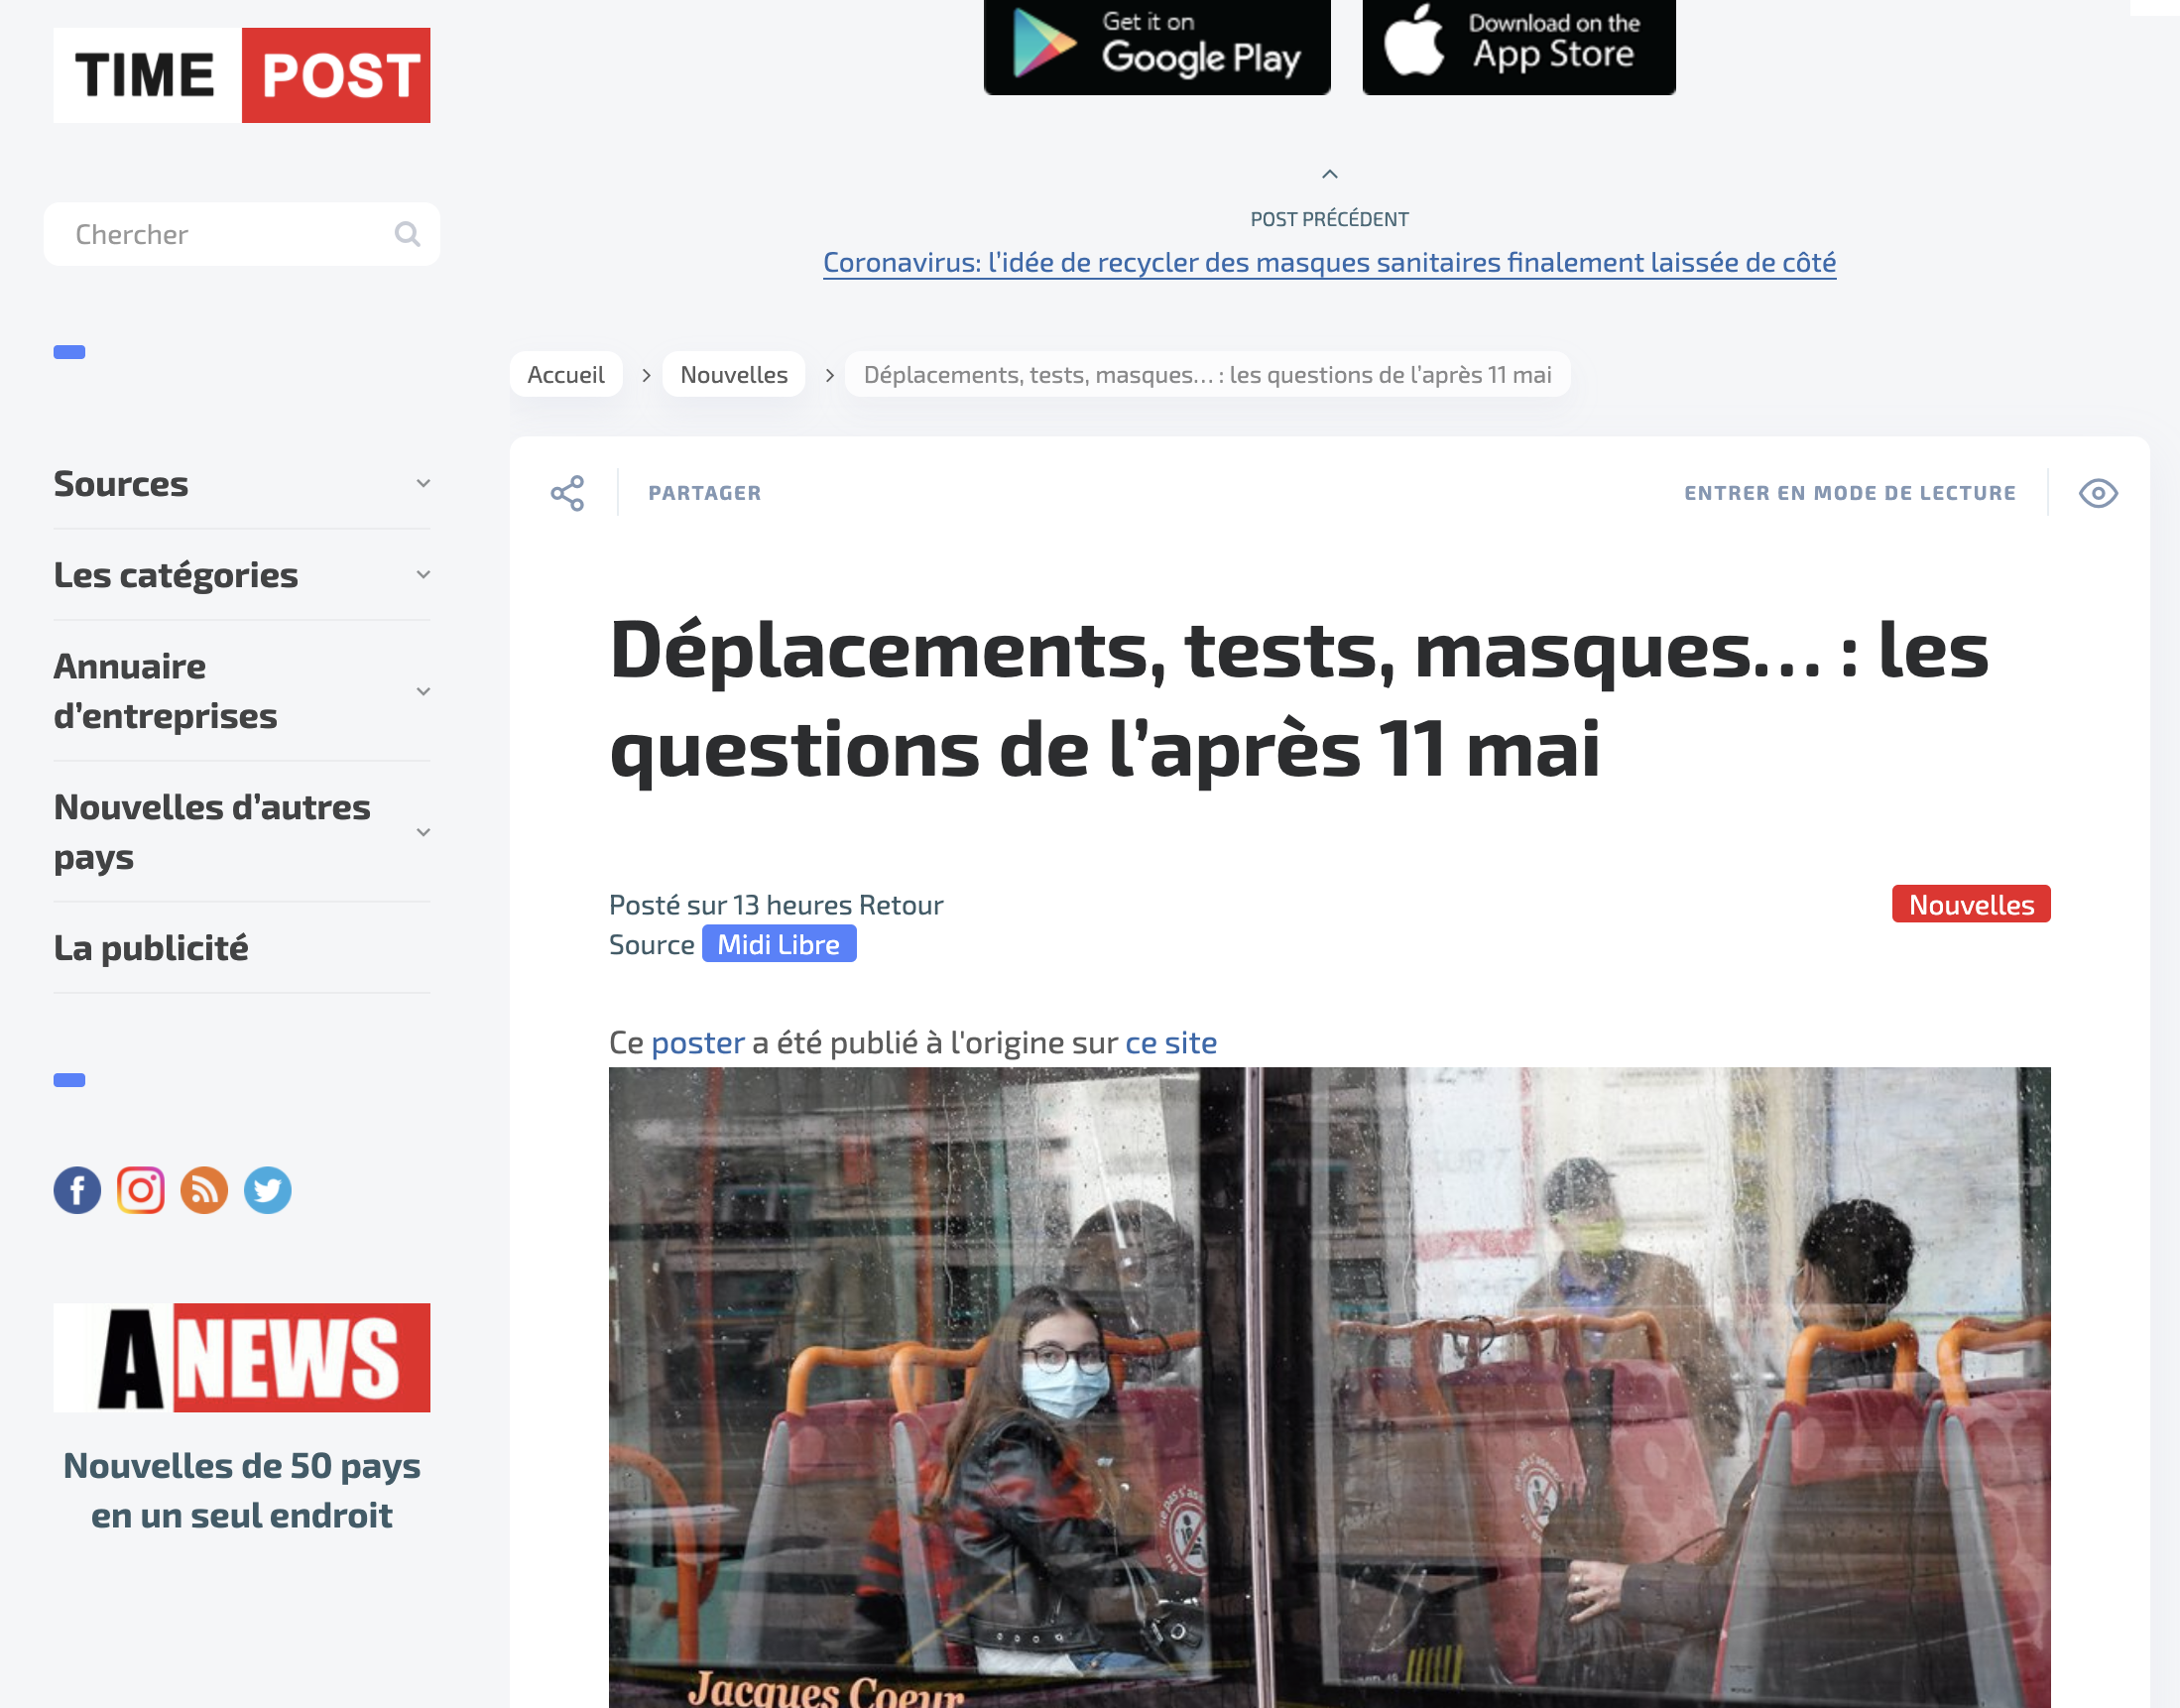 Article Time Post au sujet de jemefaisdepister.fr